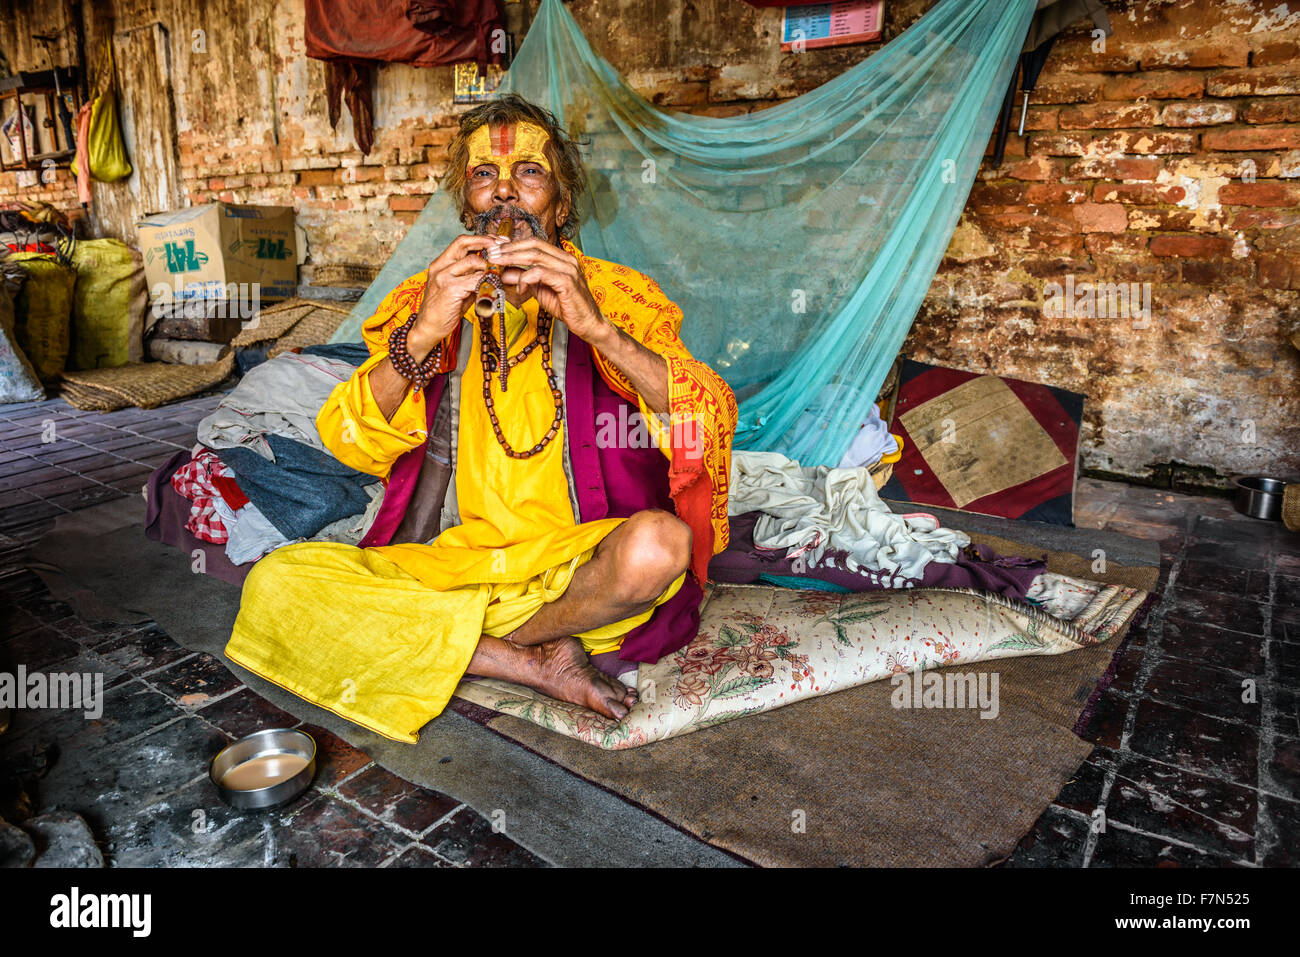 Sadhu baba (holy man) living in Pashupatinath Temple plays a pipe - Stock Image